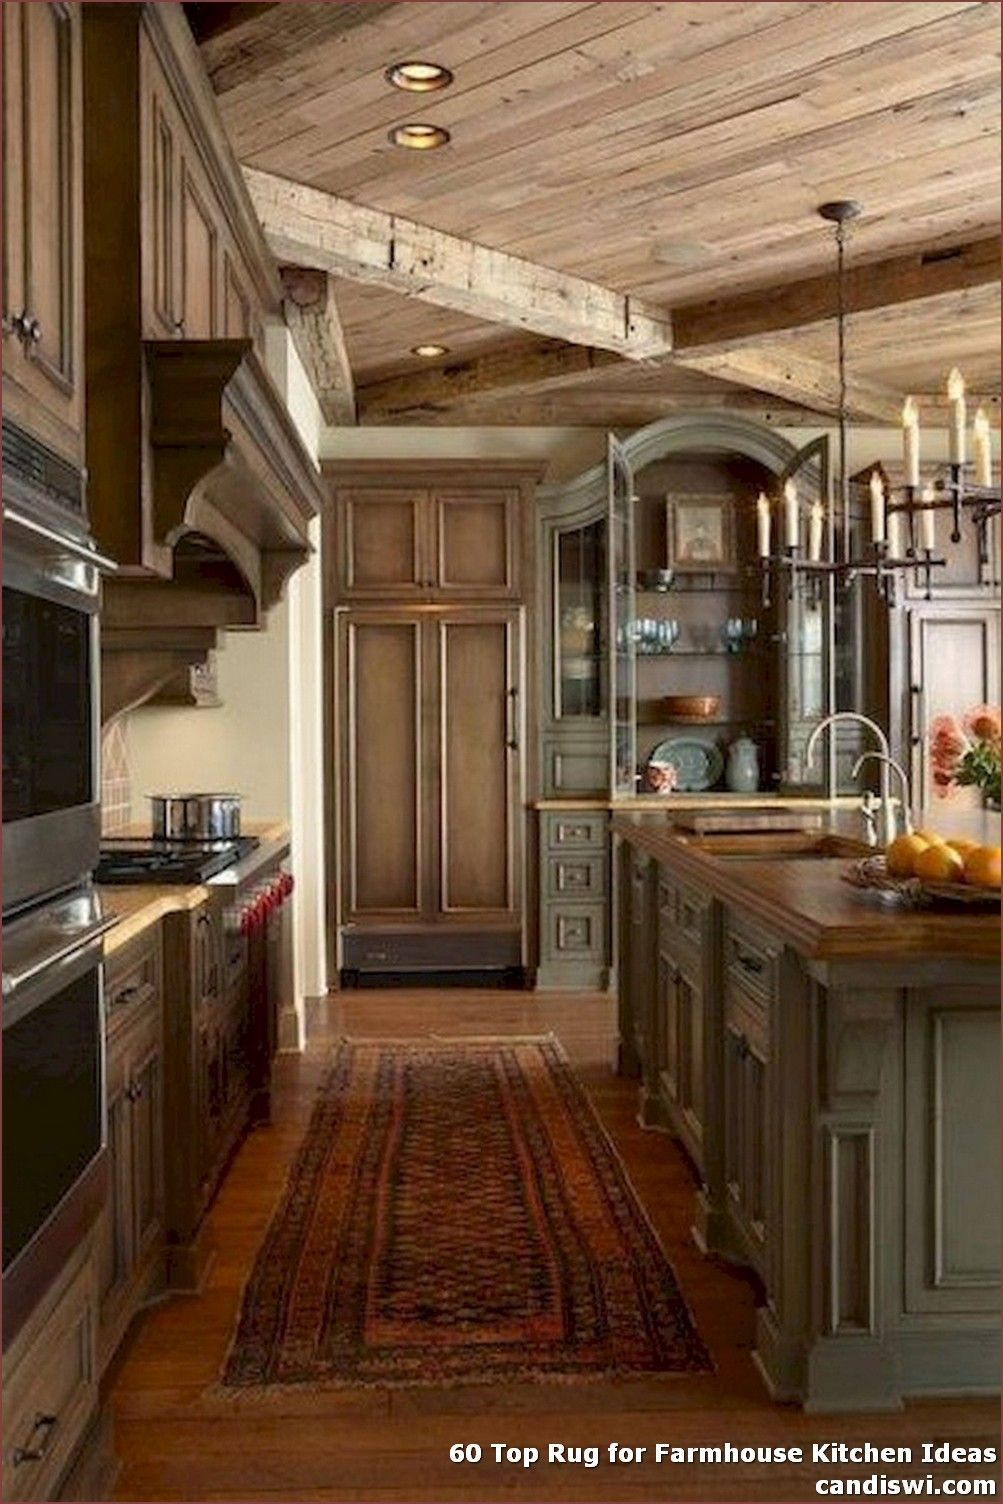 60 Top Rug for Farmhouse Kitchen Ideas farmhouse kitchen